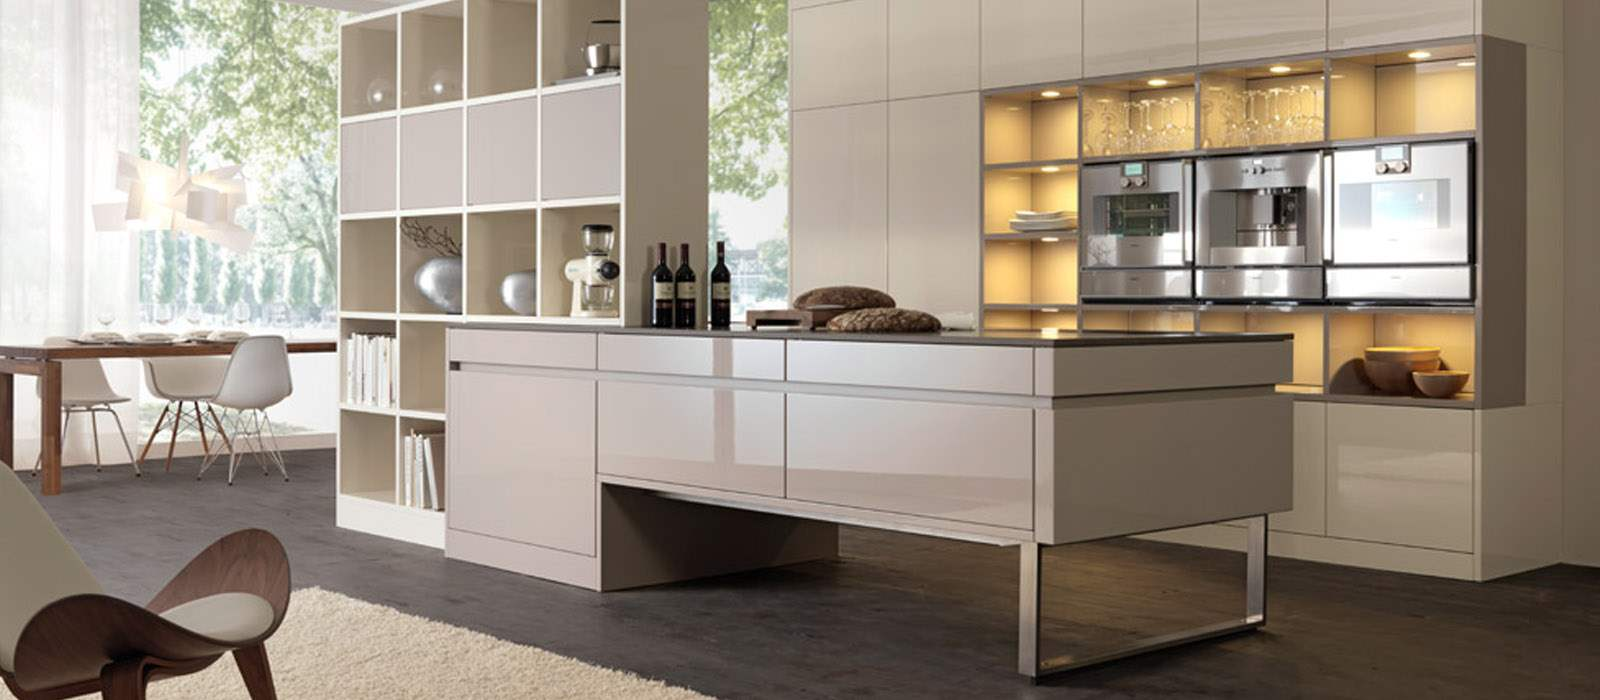 Free Kitchen Design modern kitchens